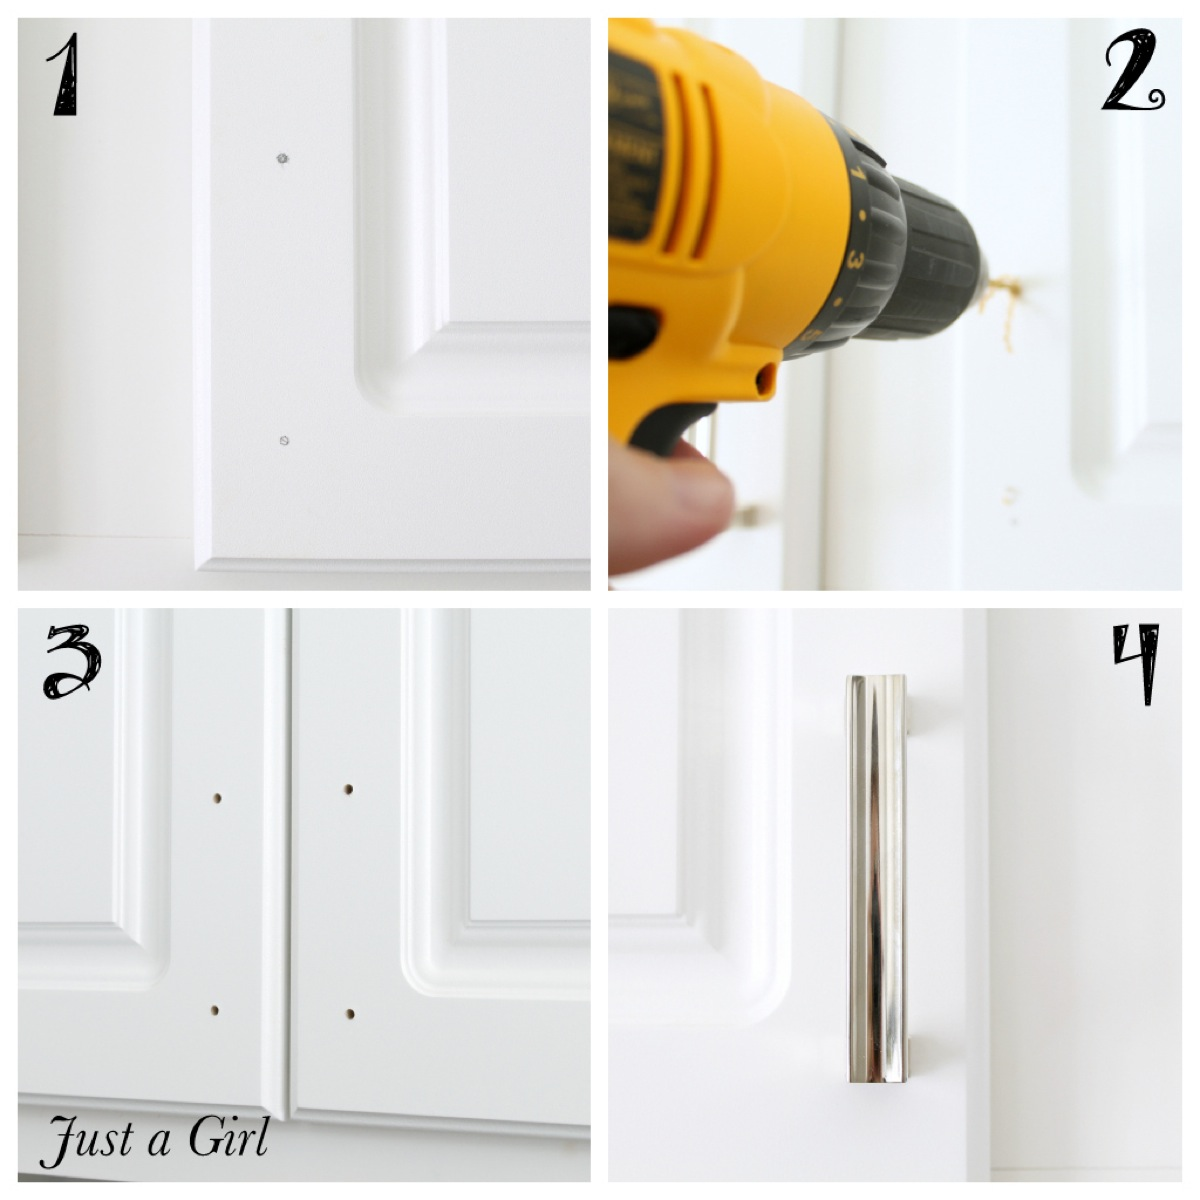 how to install cabinet hardware install kitchen cabinets How to install cabinet hardware